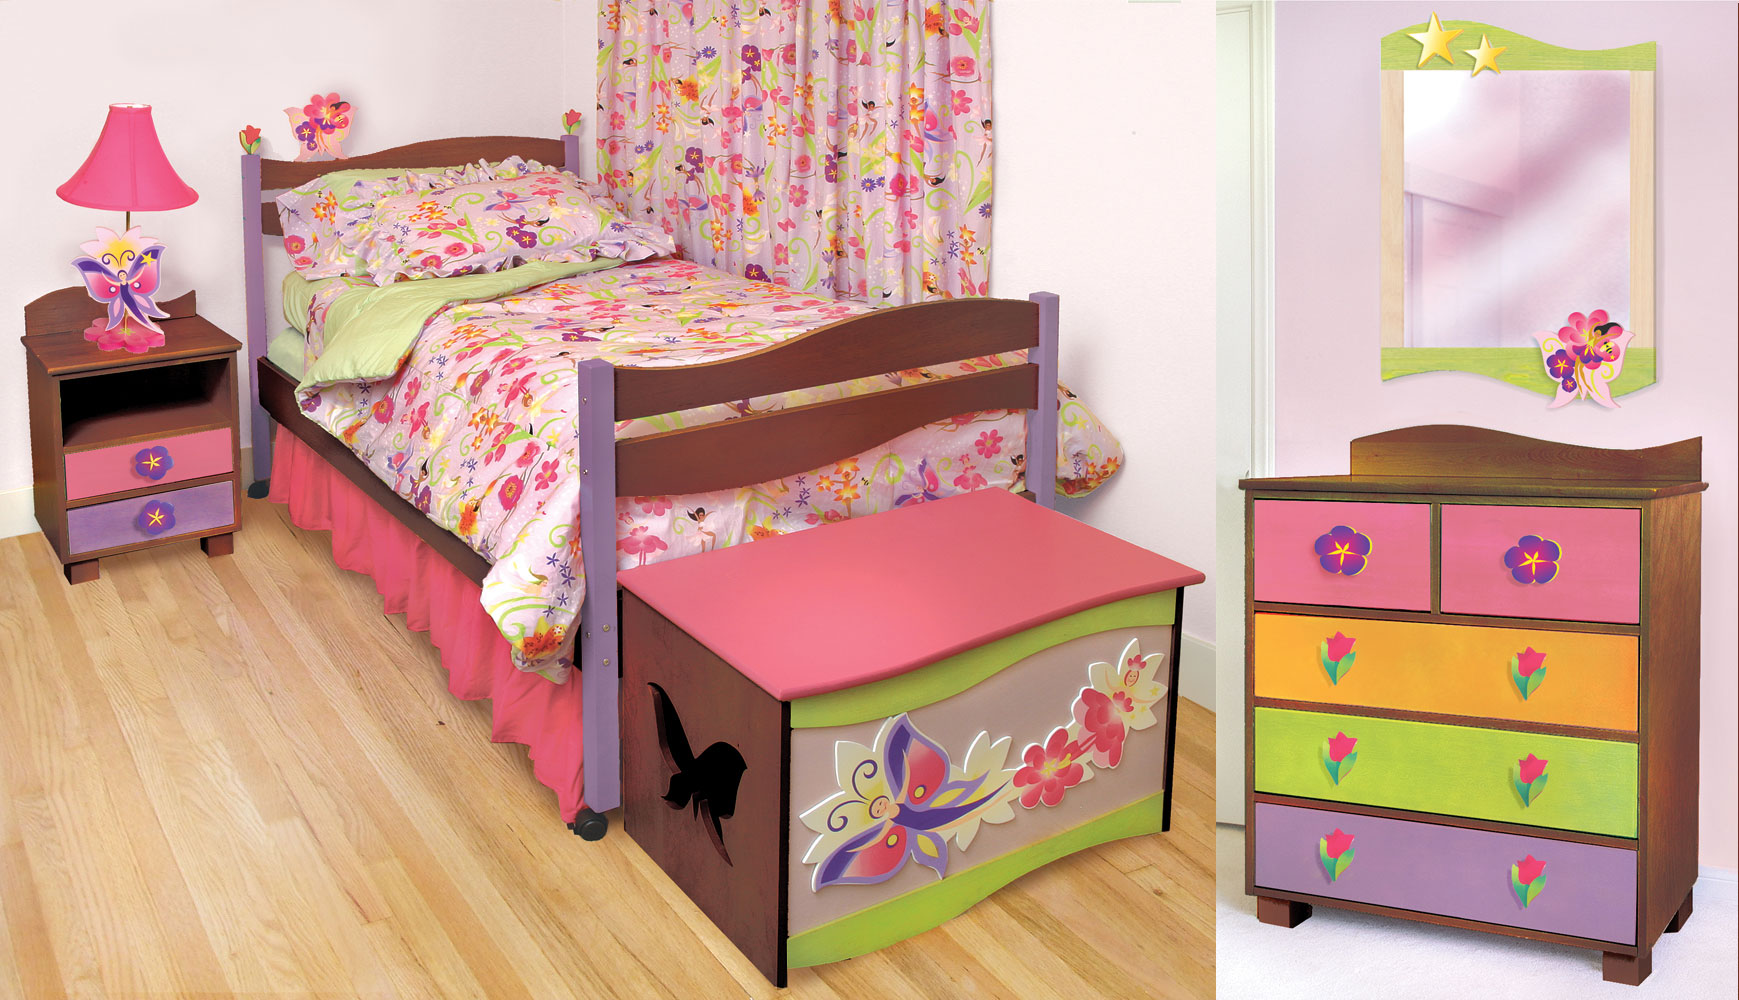 woode-trundle-bed-decorative-designs-for-kids-bedrooms-small-modern-kids-bedroom-floral-duvet-cover-designs-for-kids-bedrooms-kids-room-impressive-designs-for-kids-bedrooms-decorations